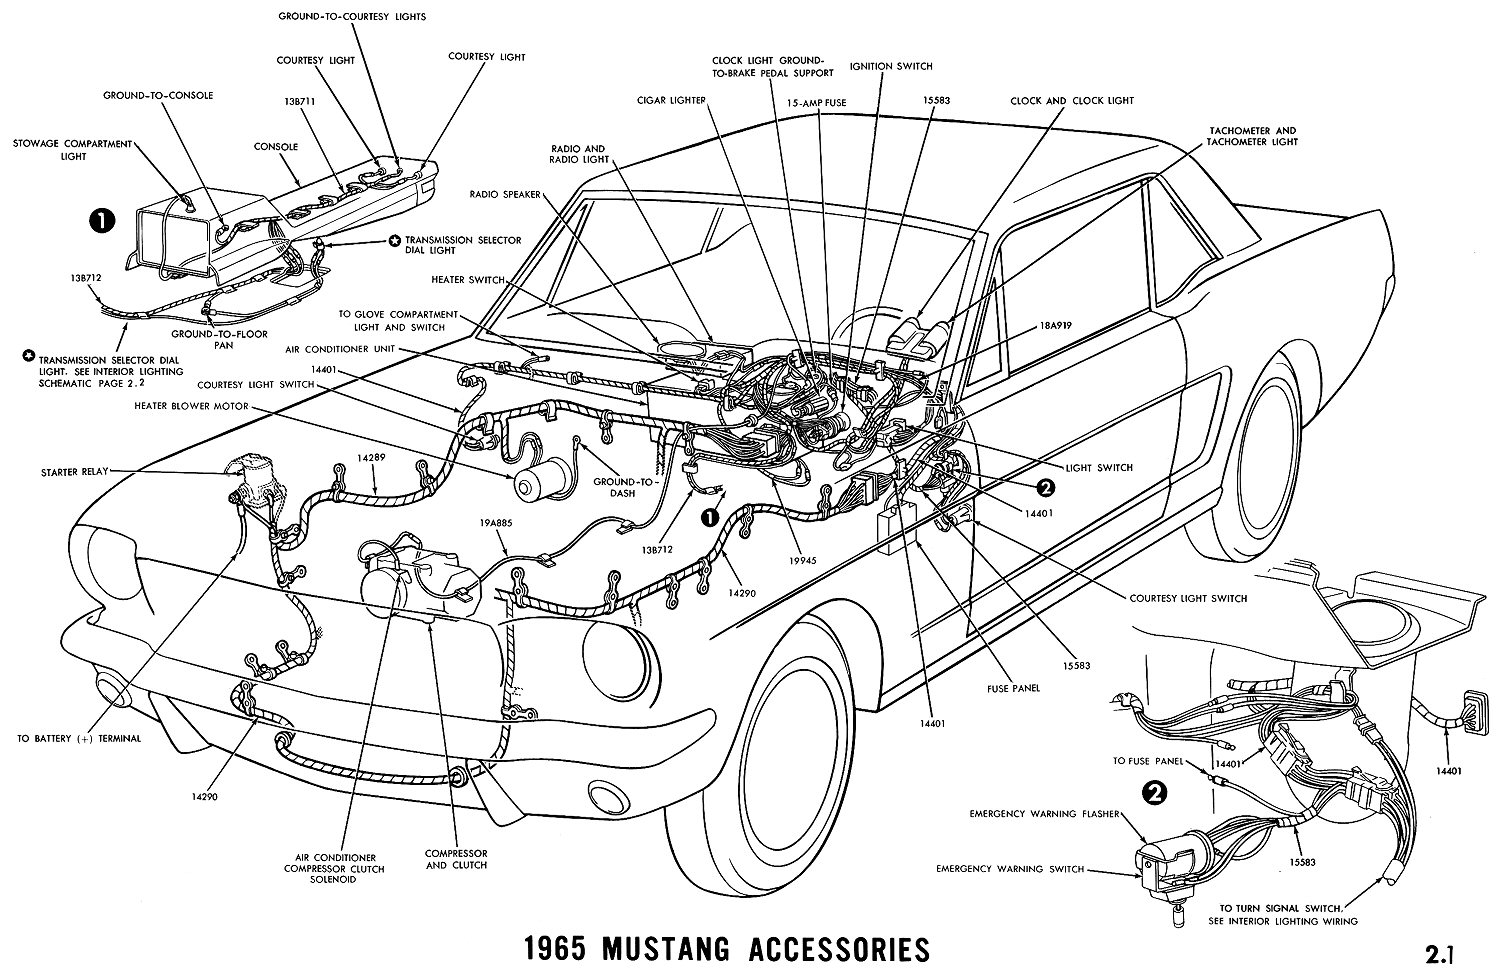 65 mustang accesories 1965 mustang accesories diagram 68 mustang fuse box diagram at reclaimingppi.co